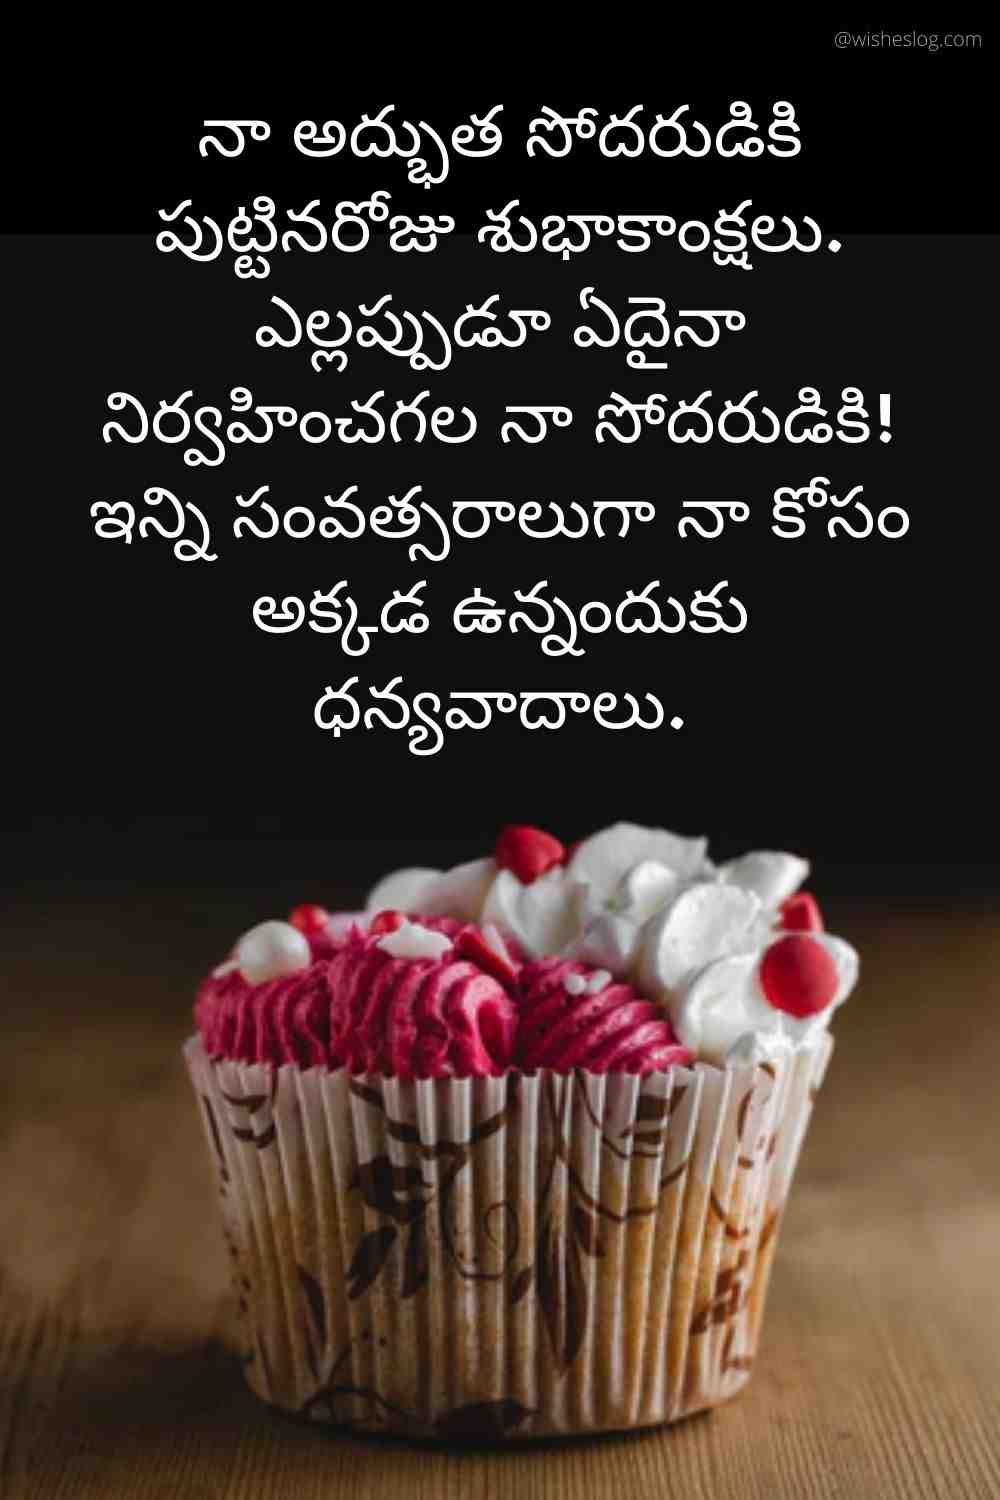 happy birthday images in telugu for brother